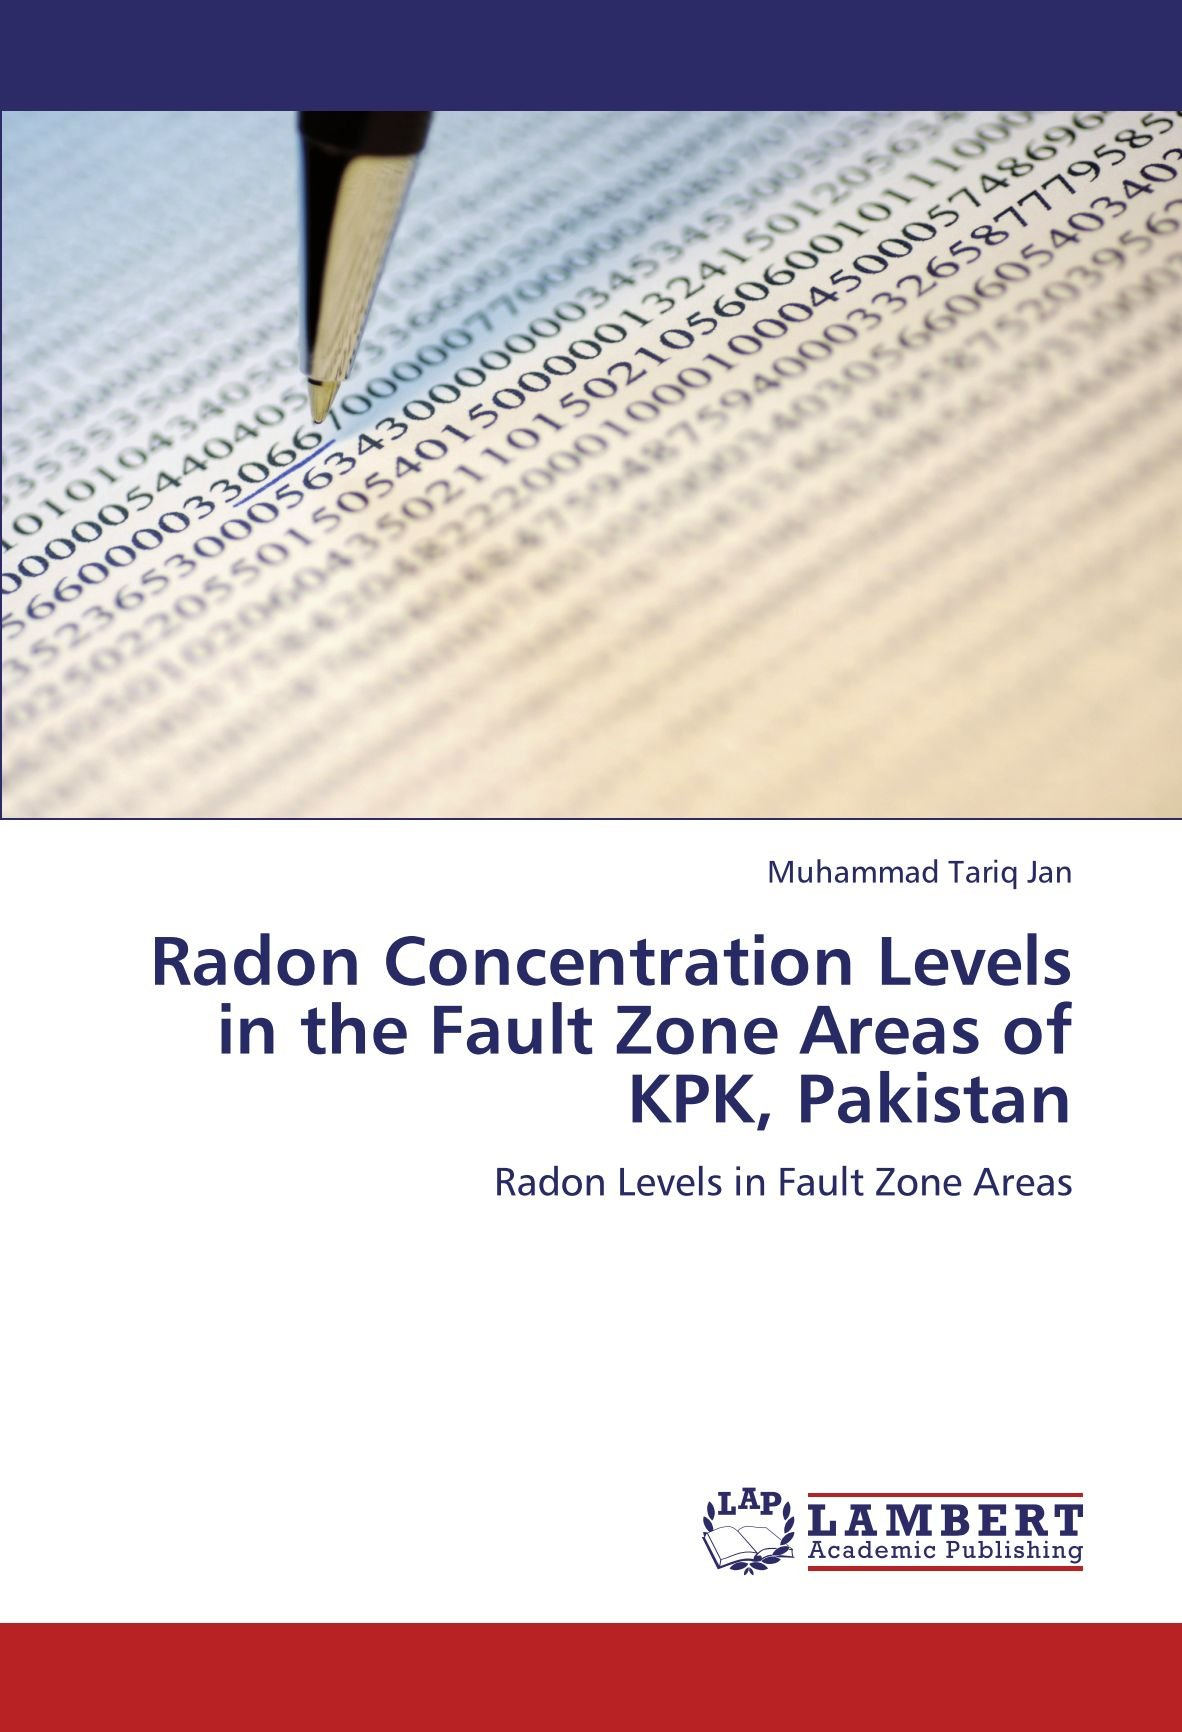 Download Radon Concentration Levels in the Fault Zone Areas of KPK, Pakistan: Radon Levels in Fault Zone Areas pdf